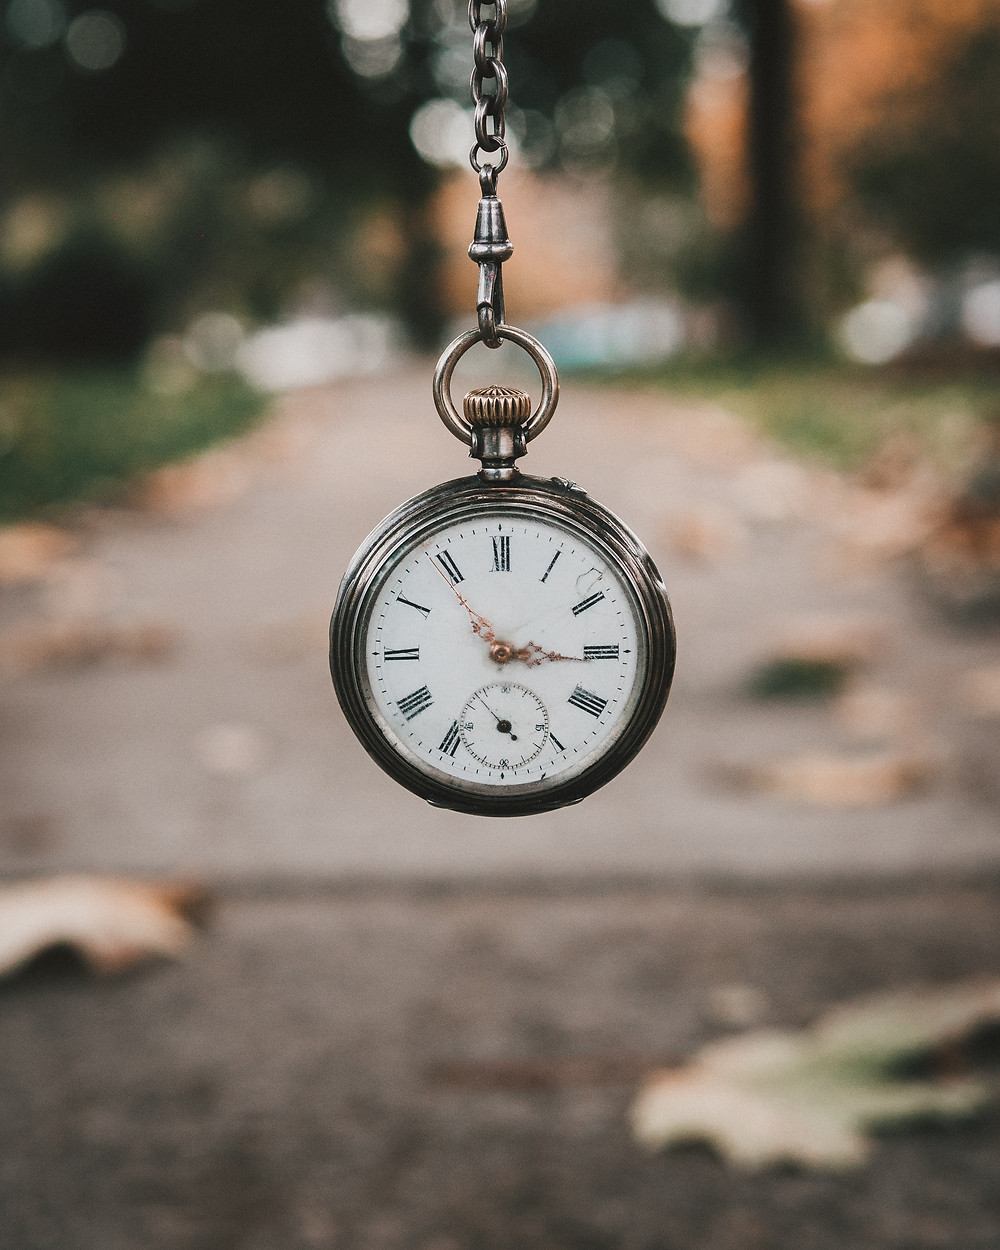 Antique stopwatch dangling in front of a leaf covered sidewalk signifying how long EMDR treatment takes for trauma treatment in Denver CO. Our caring and experienced therapists provide EMDR for trauma counseling at Catalyss Counseling in Englewood CO 80209 and 80210